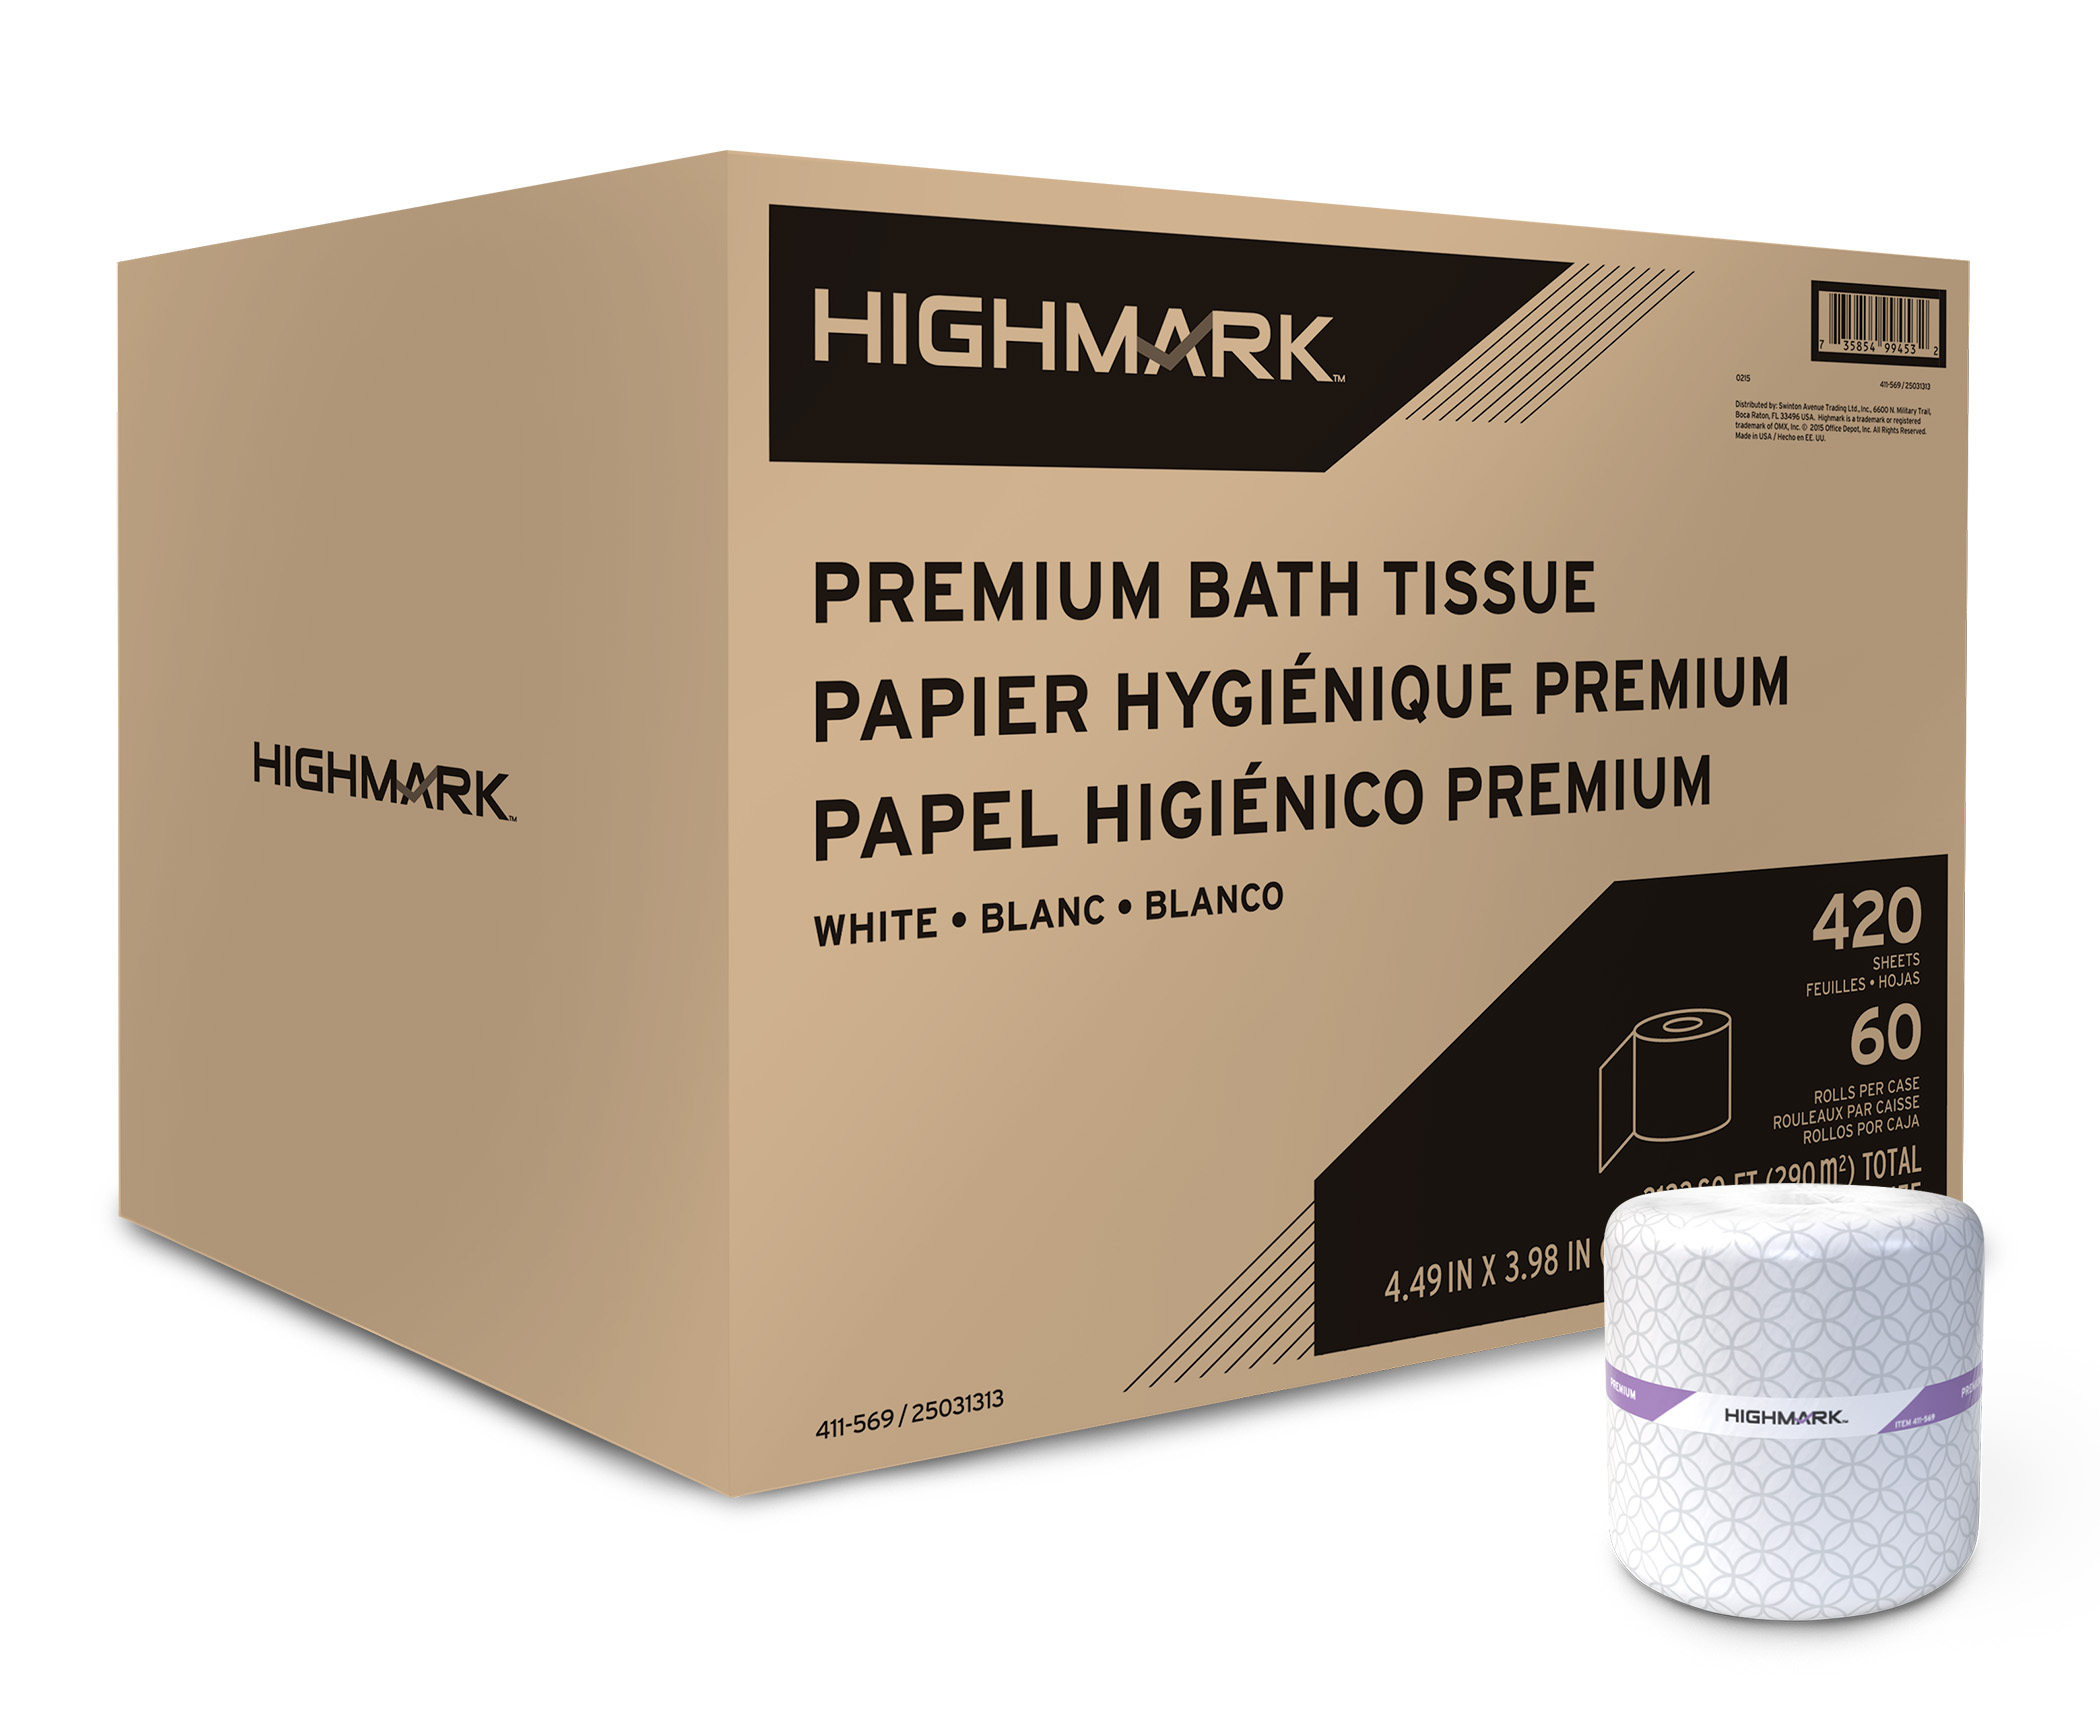 Highmark® Premium 2-Ply Toilet Paper, White, 420 Sheets Per Roll, Case Of 60 Rolls